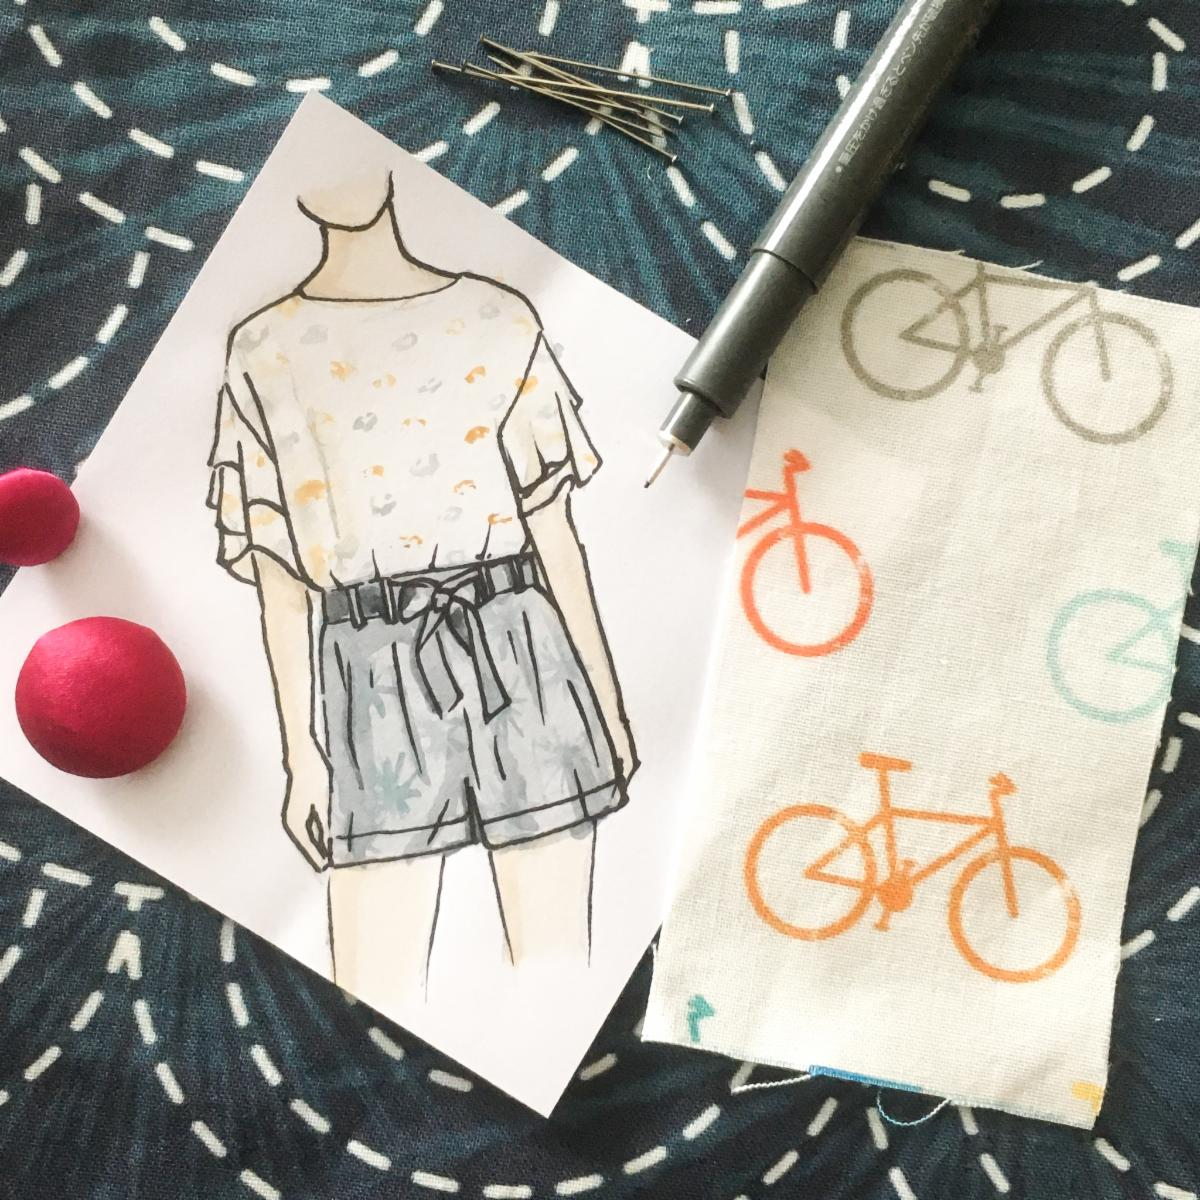 Flatlay of fabric button and sketch